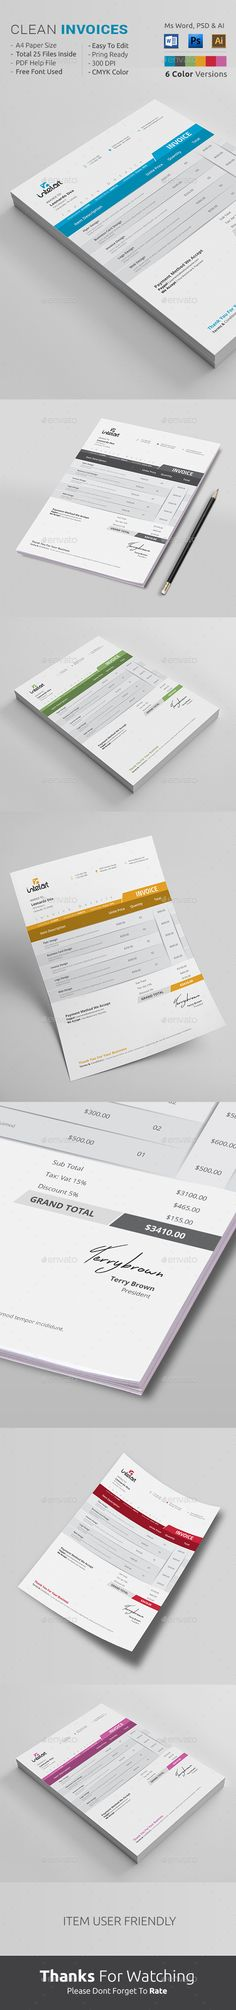 20 Creative Invoice \ Proposal Template Designs Template - use of an invoice